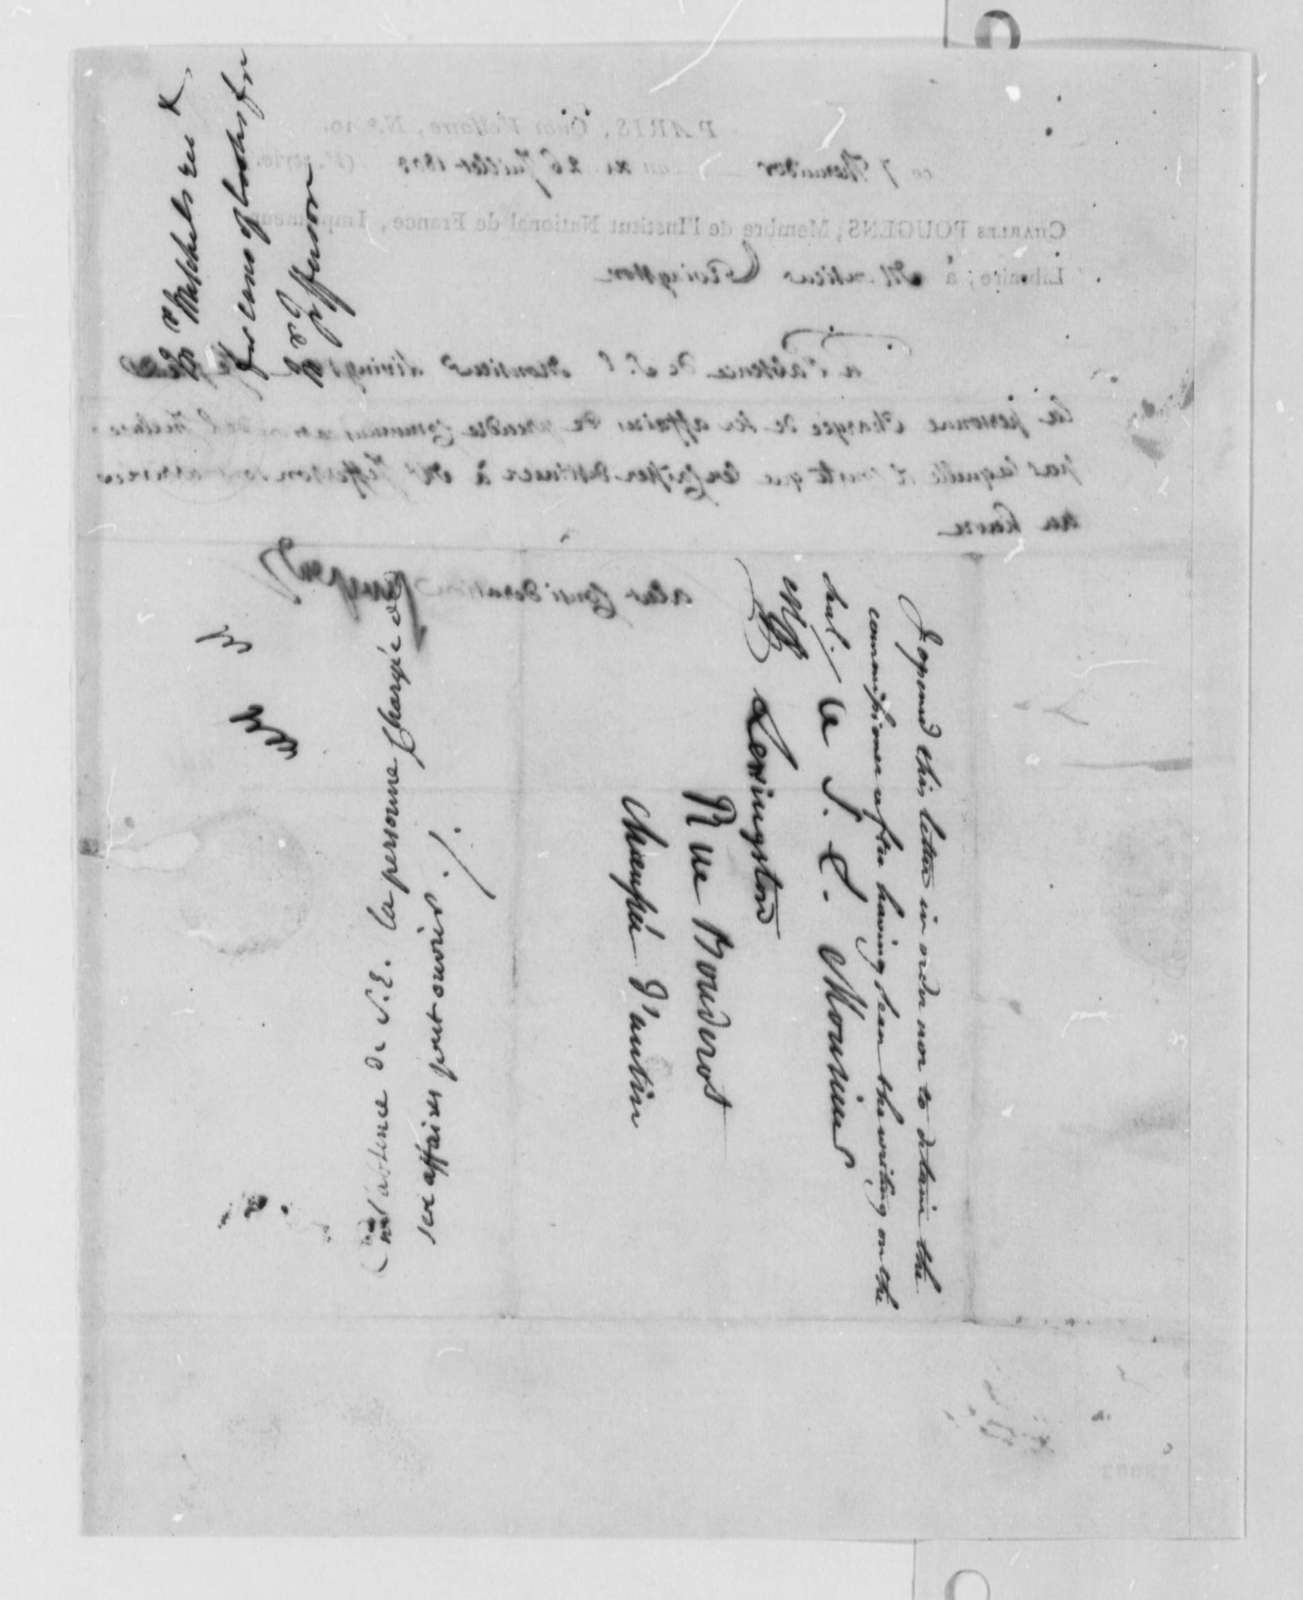 Charles de Pougens to Robert R. Livingston, July 26, 1803, in French